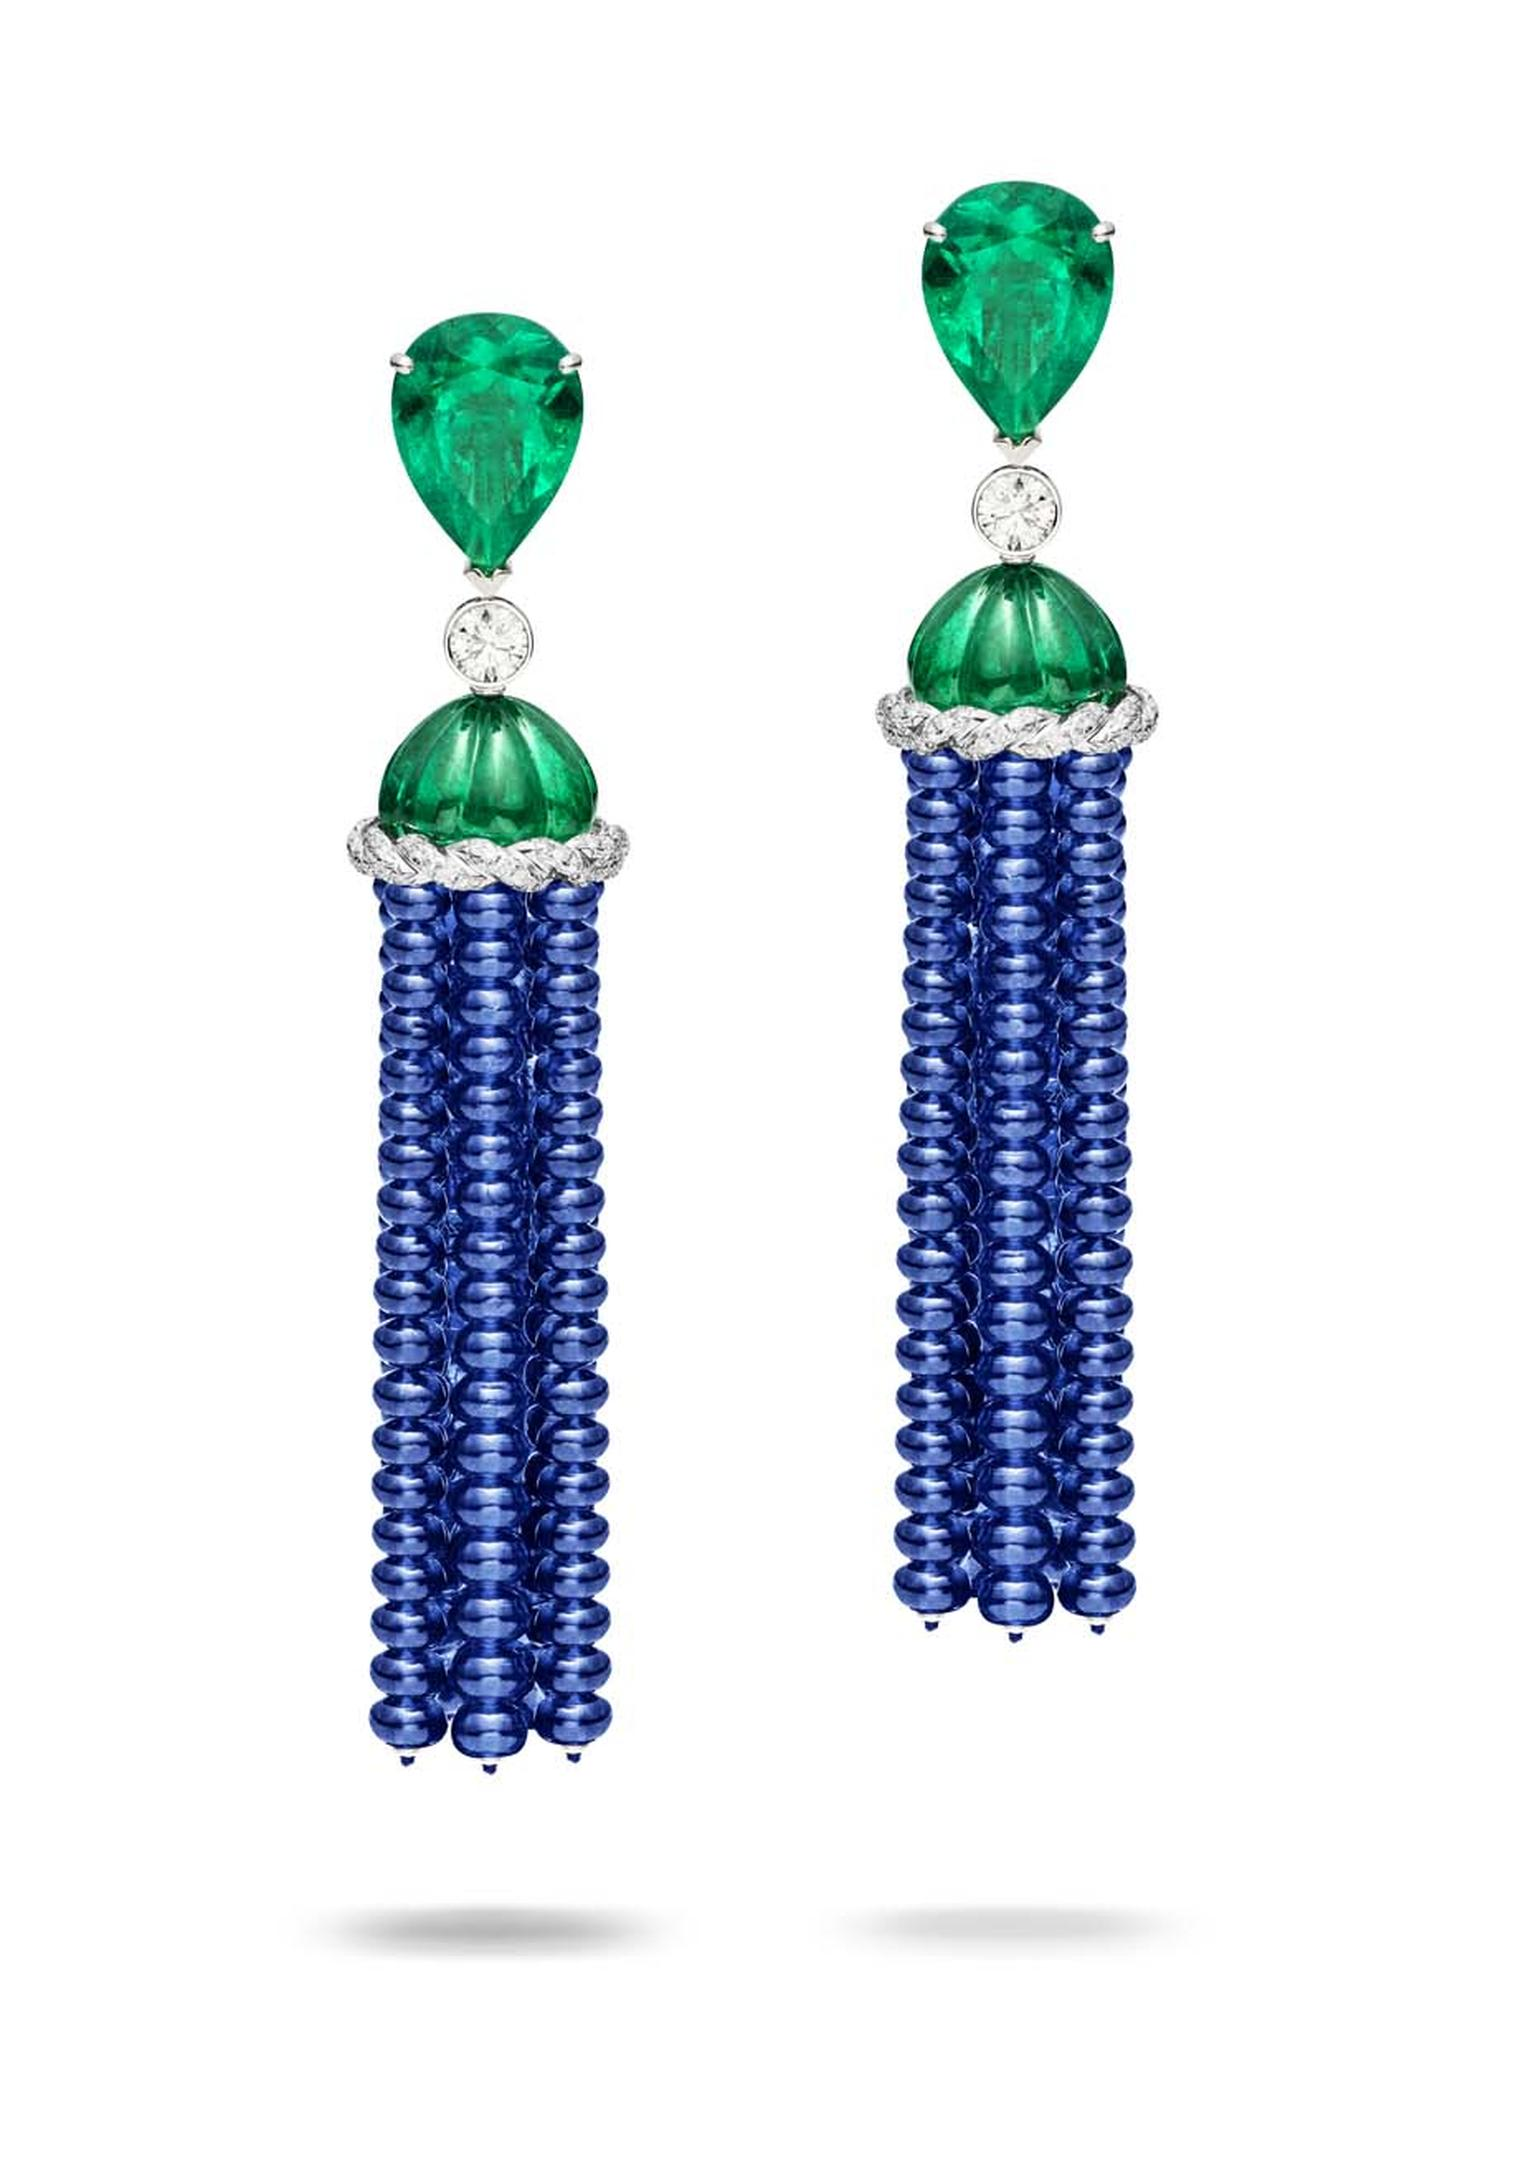 Piaget blue sapphire and emerald earrings, as worn by Gong Li to the 2015 Met Gala in New York.